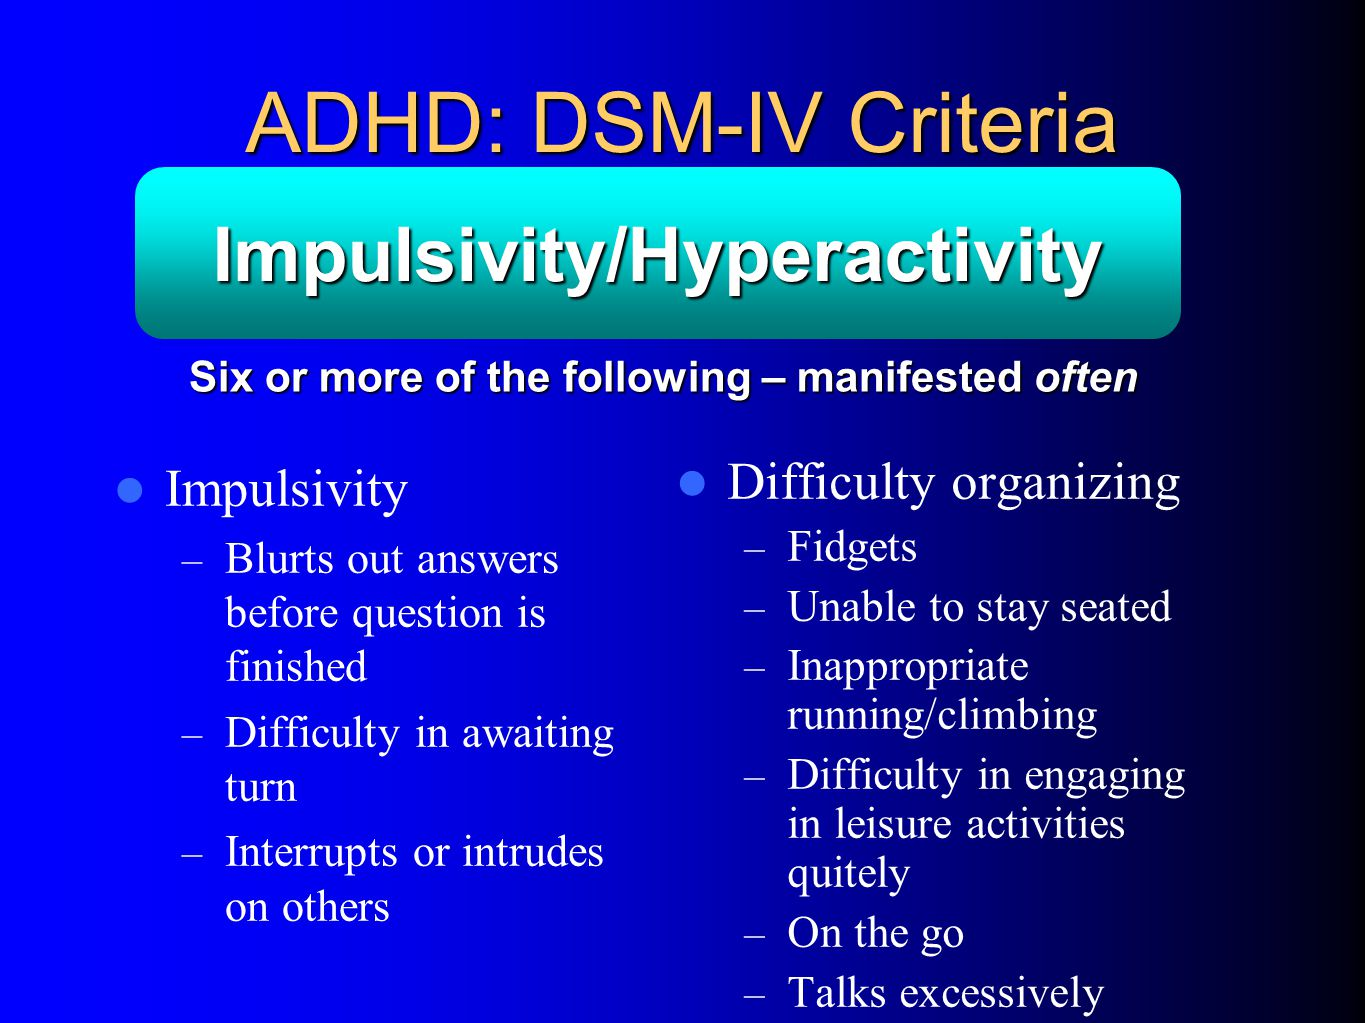 ADHD: DSM-IV Criteria Impulsivity – Blurts out answers before question is finished – Difficulty in awaiting turn – Interrupts or intrudes on others Difficulty organizing – Fidgets – Unable to stay seated – Inappropriate running/climbing – Difficulty in engaging in leisure activities quitely – On the go – Talks excessively Impulsivity/Hyperactivity Six or more of the following – manifested often